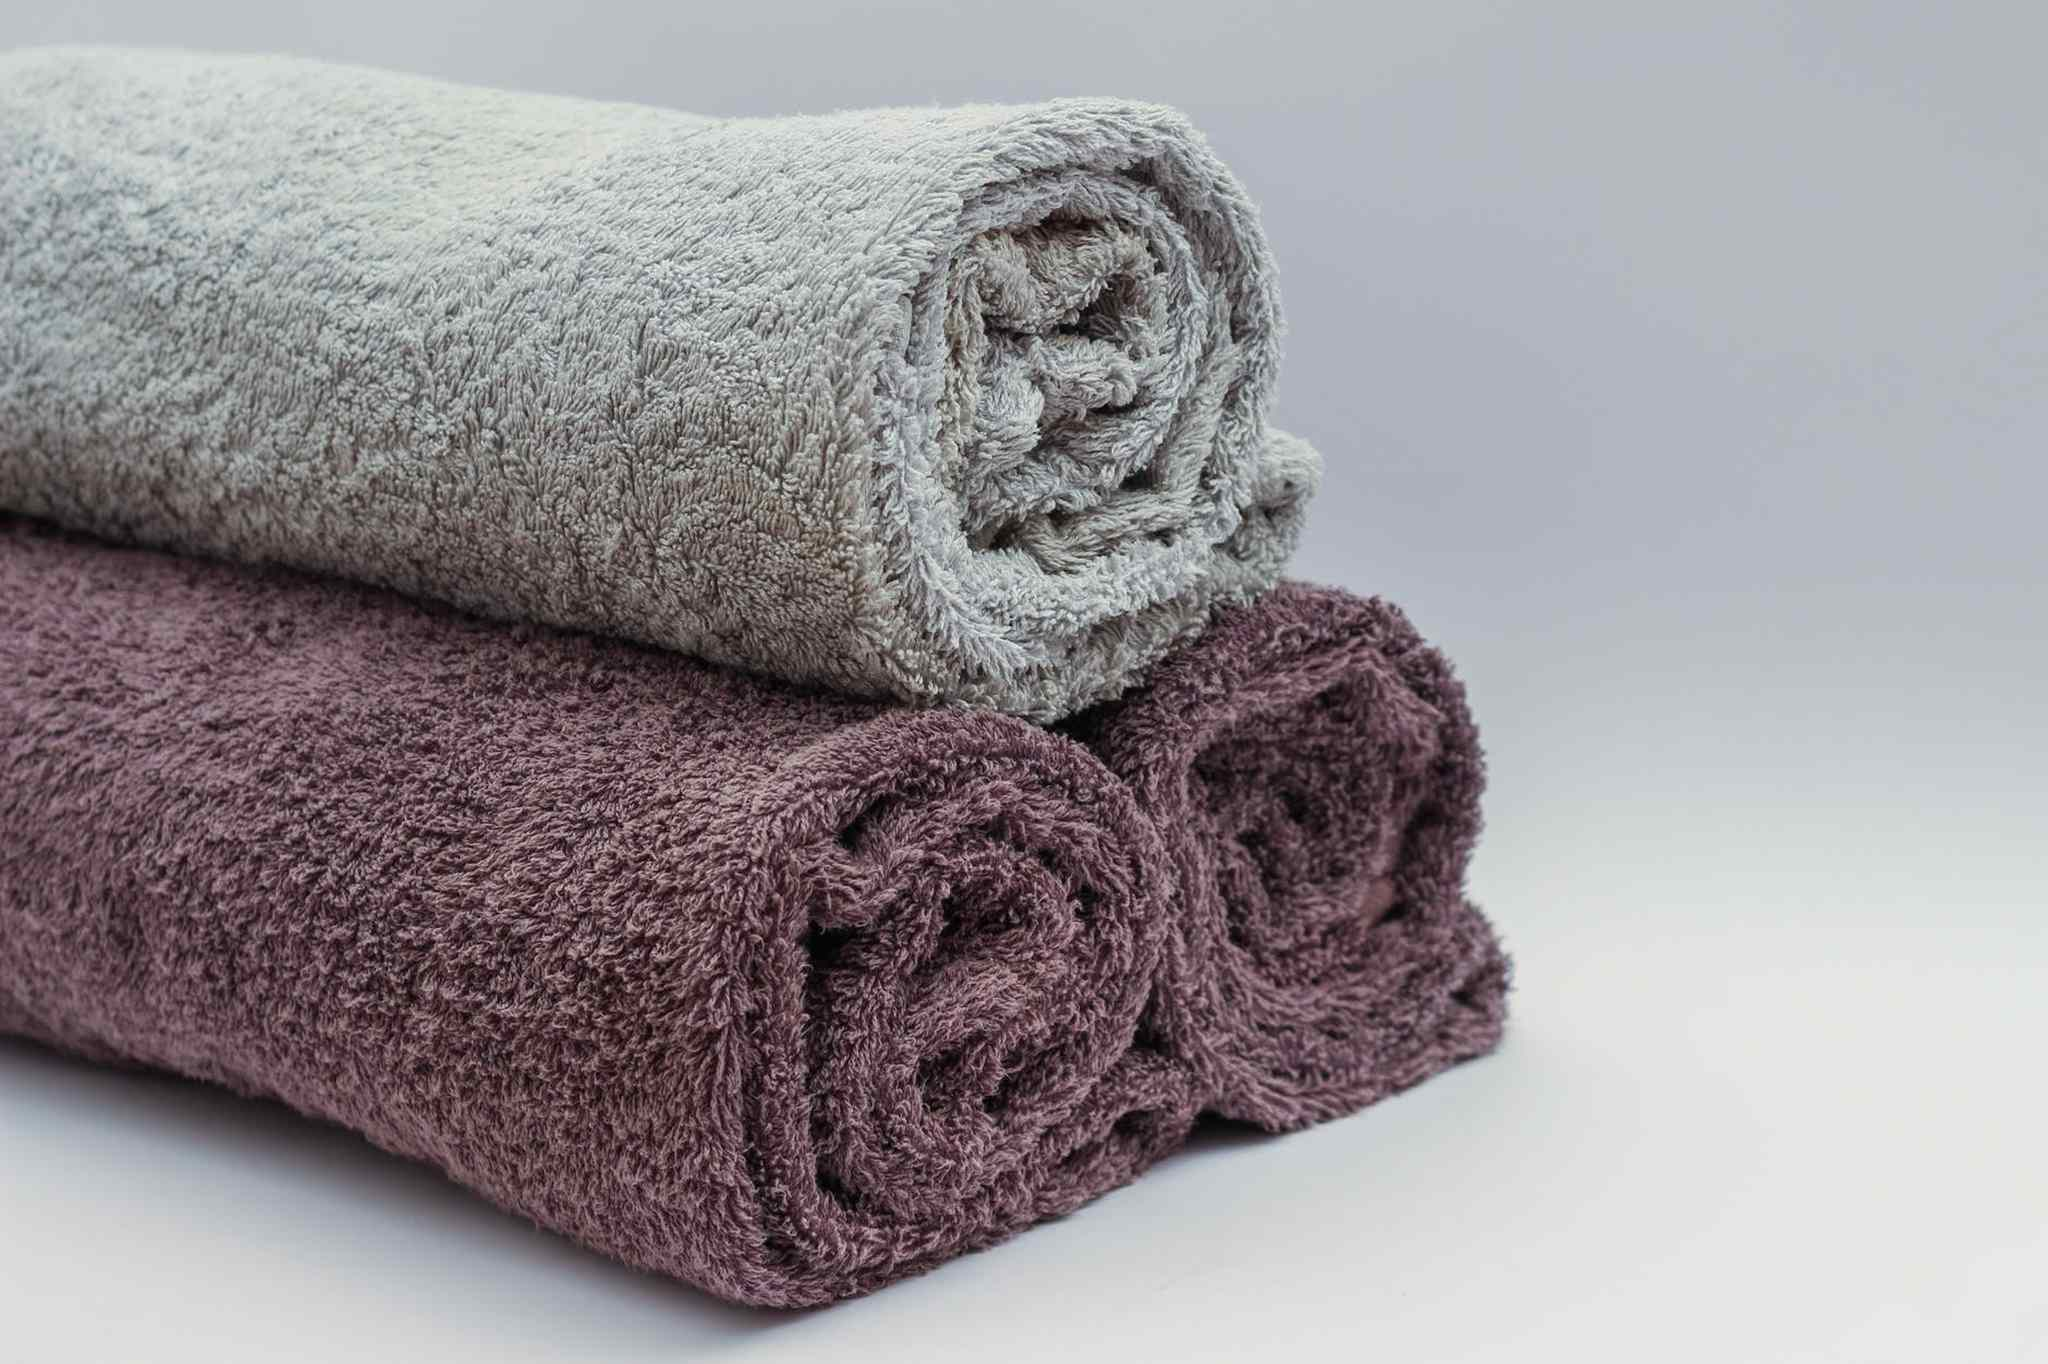 white and claret red towels, what is terry cloth